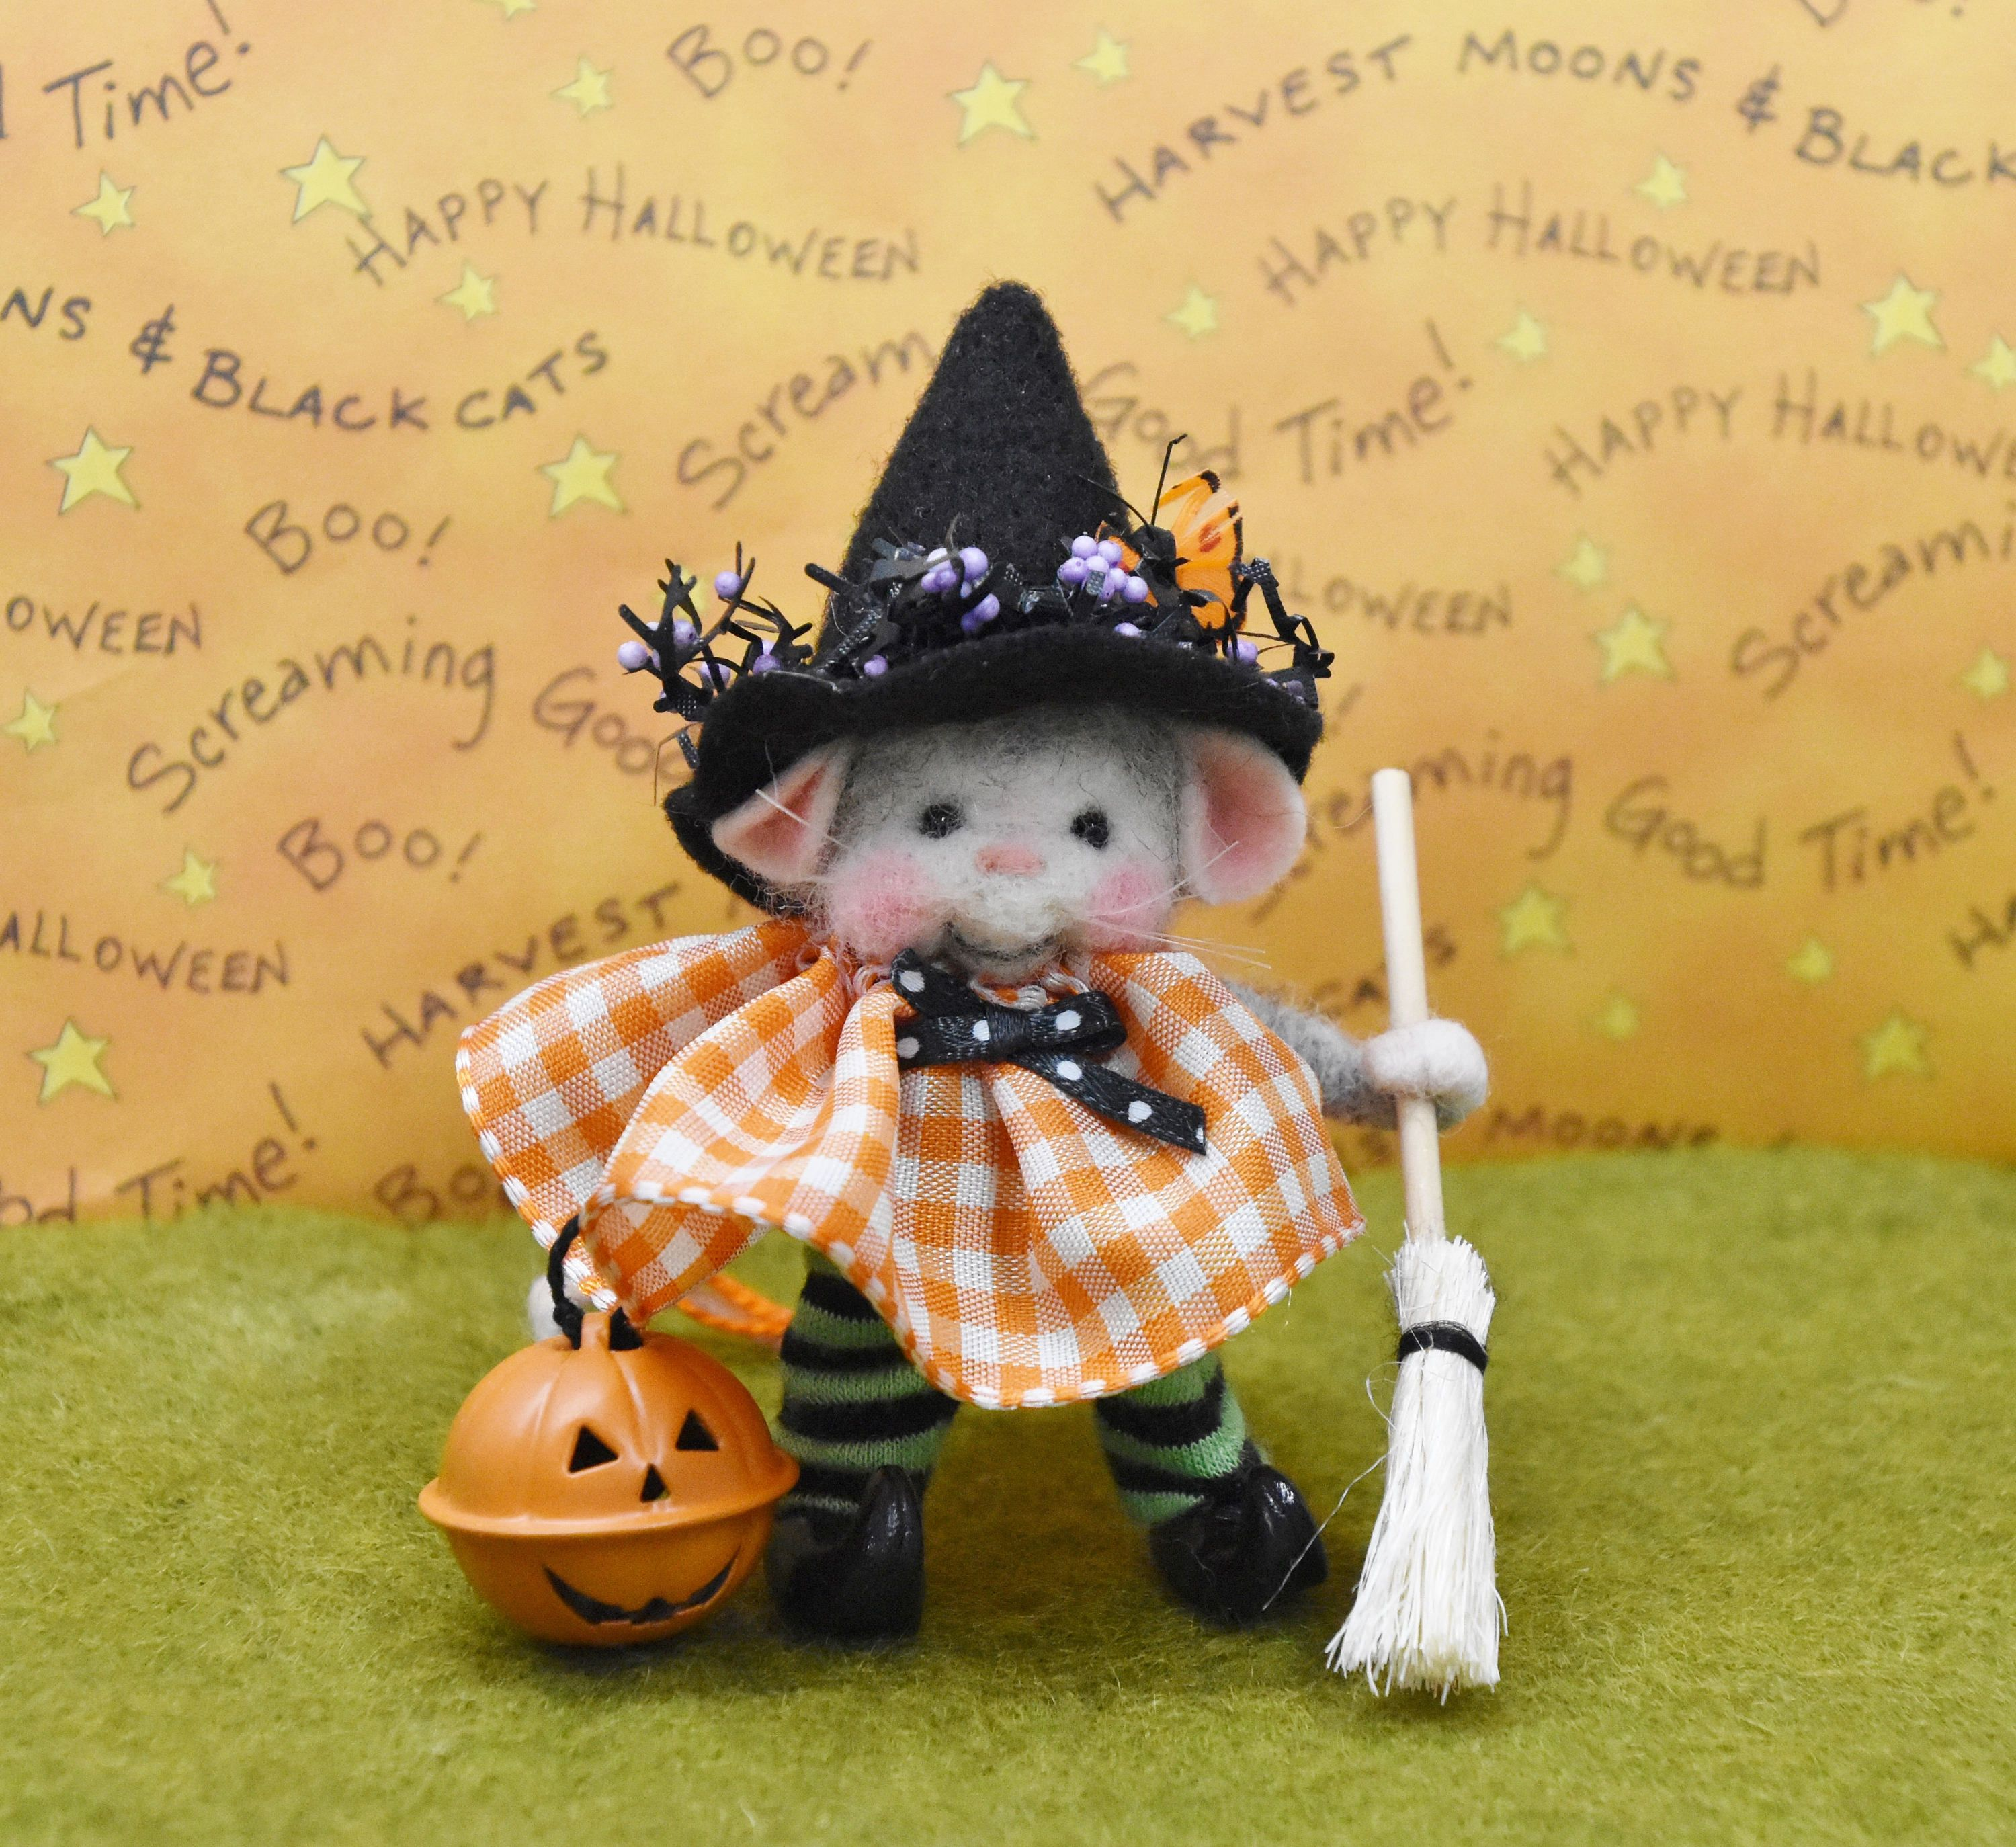 needle felted halloween mouse witchjustfeltrite on etsy | heart